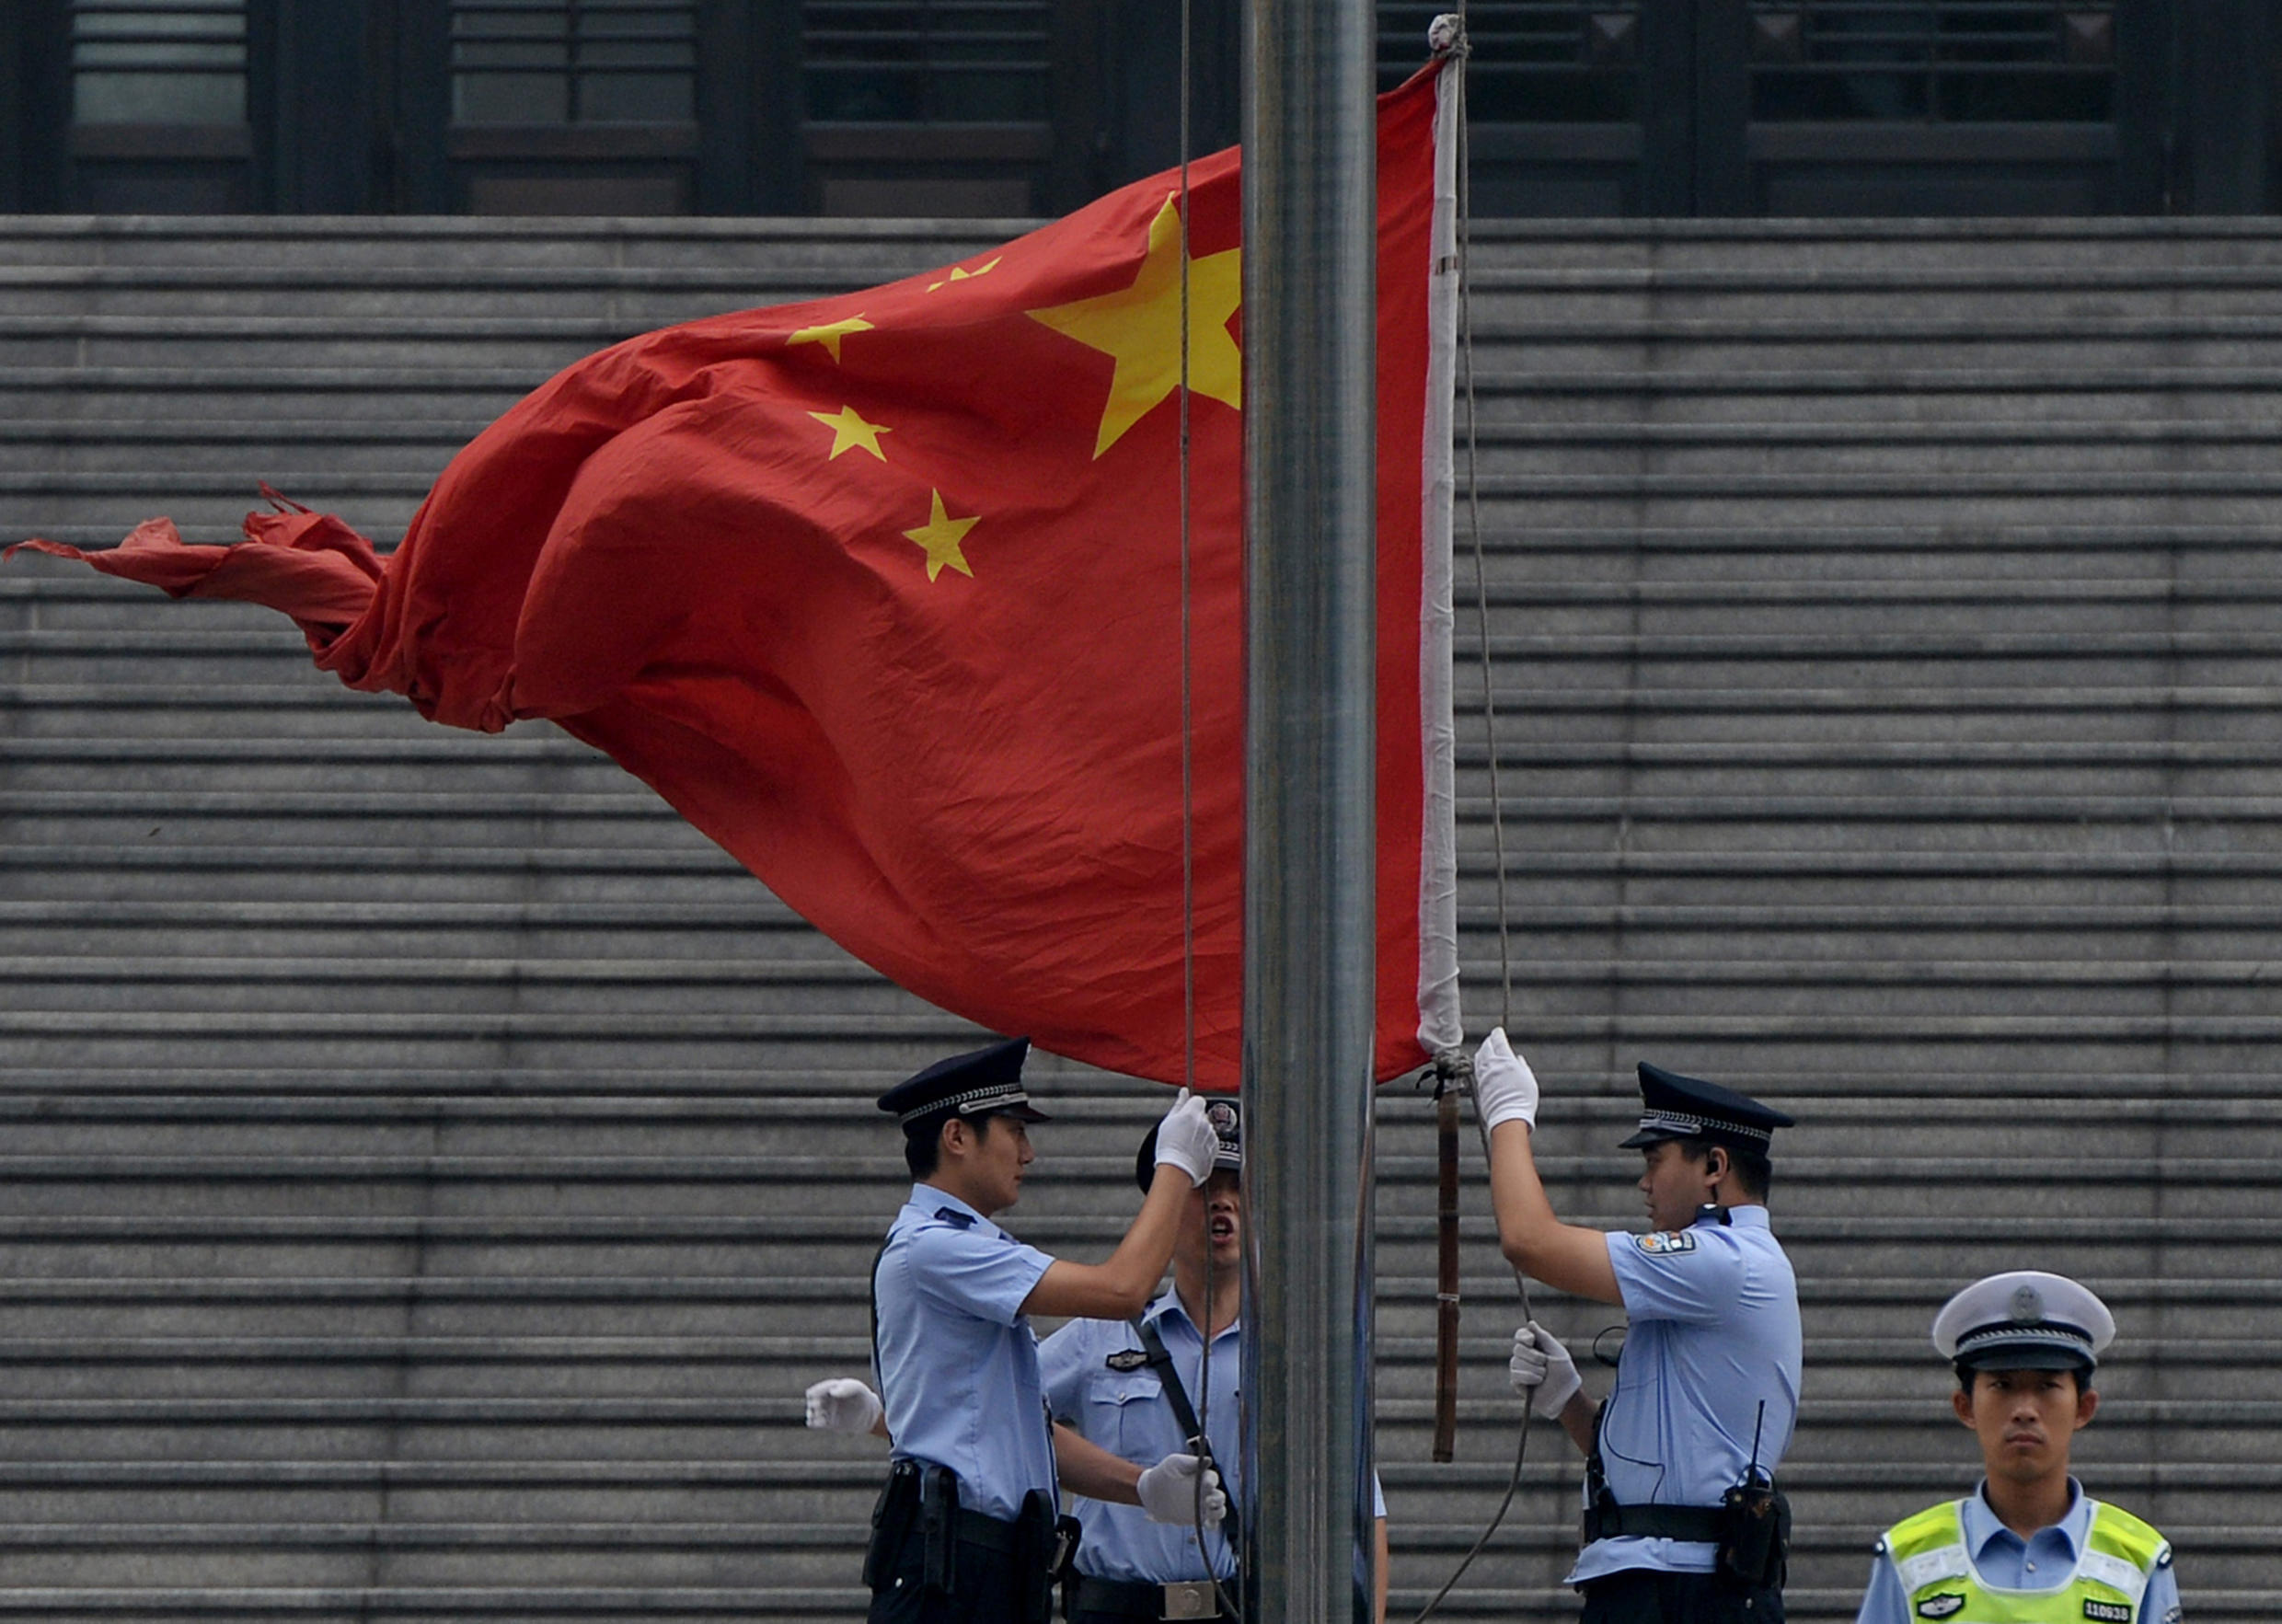 Last year, China sentenced two Canadian nationals to death on drug trafficking charges during an escalating diplomatic row with Canada